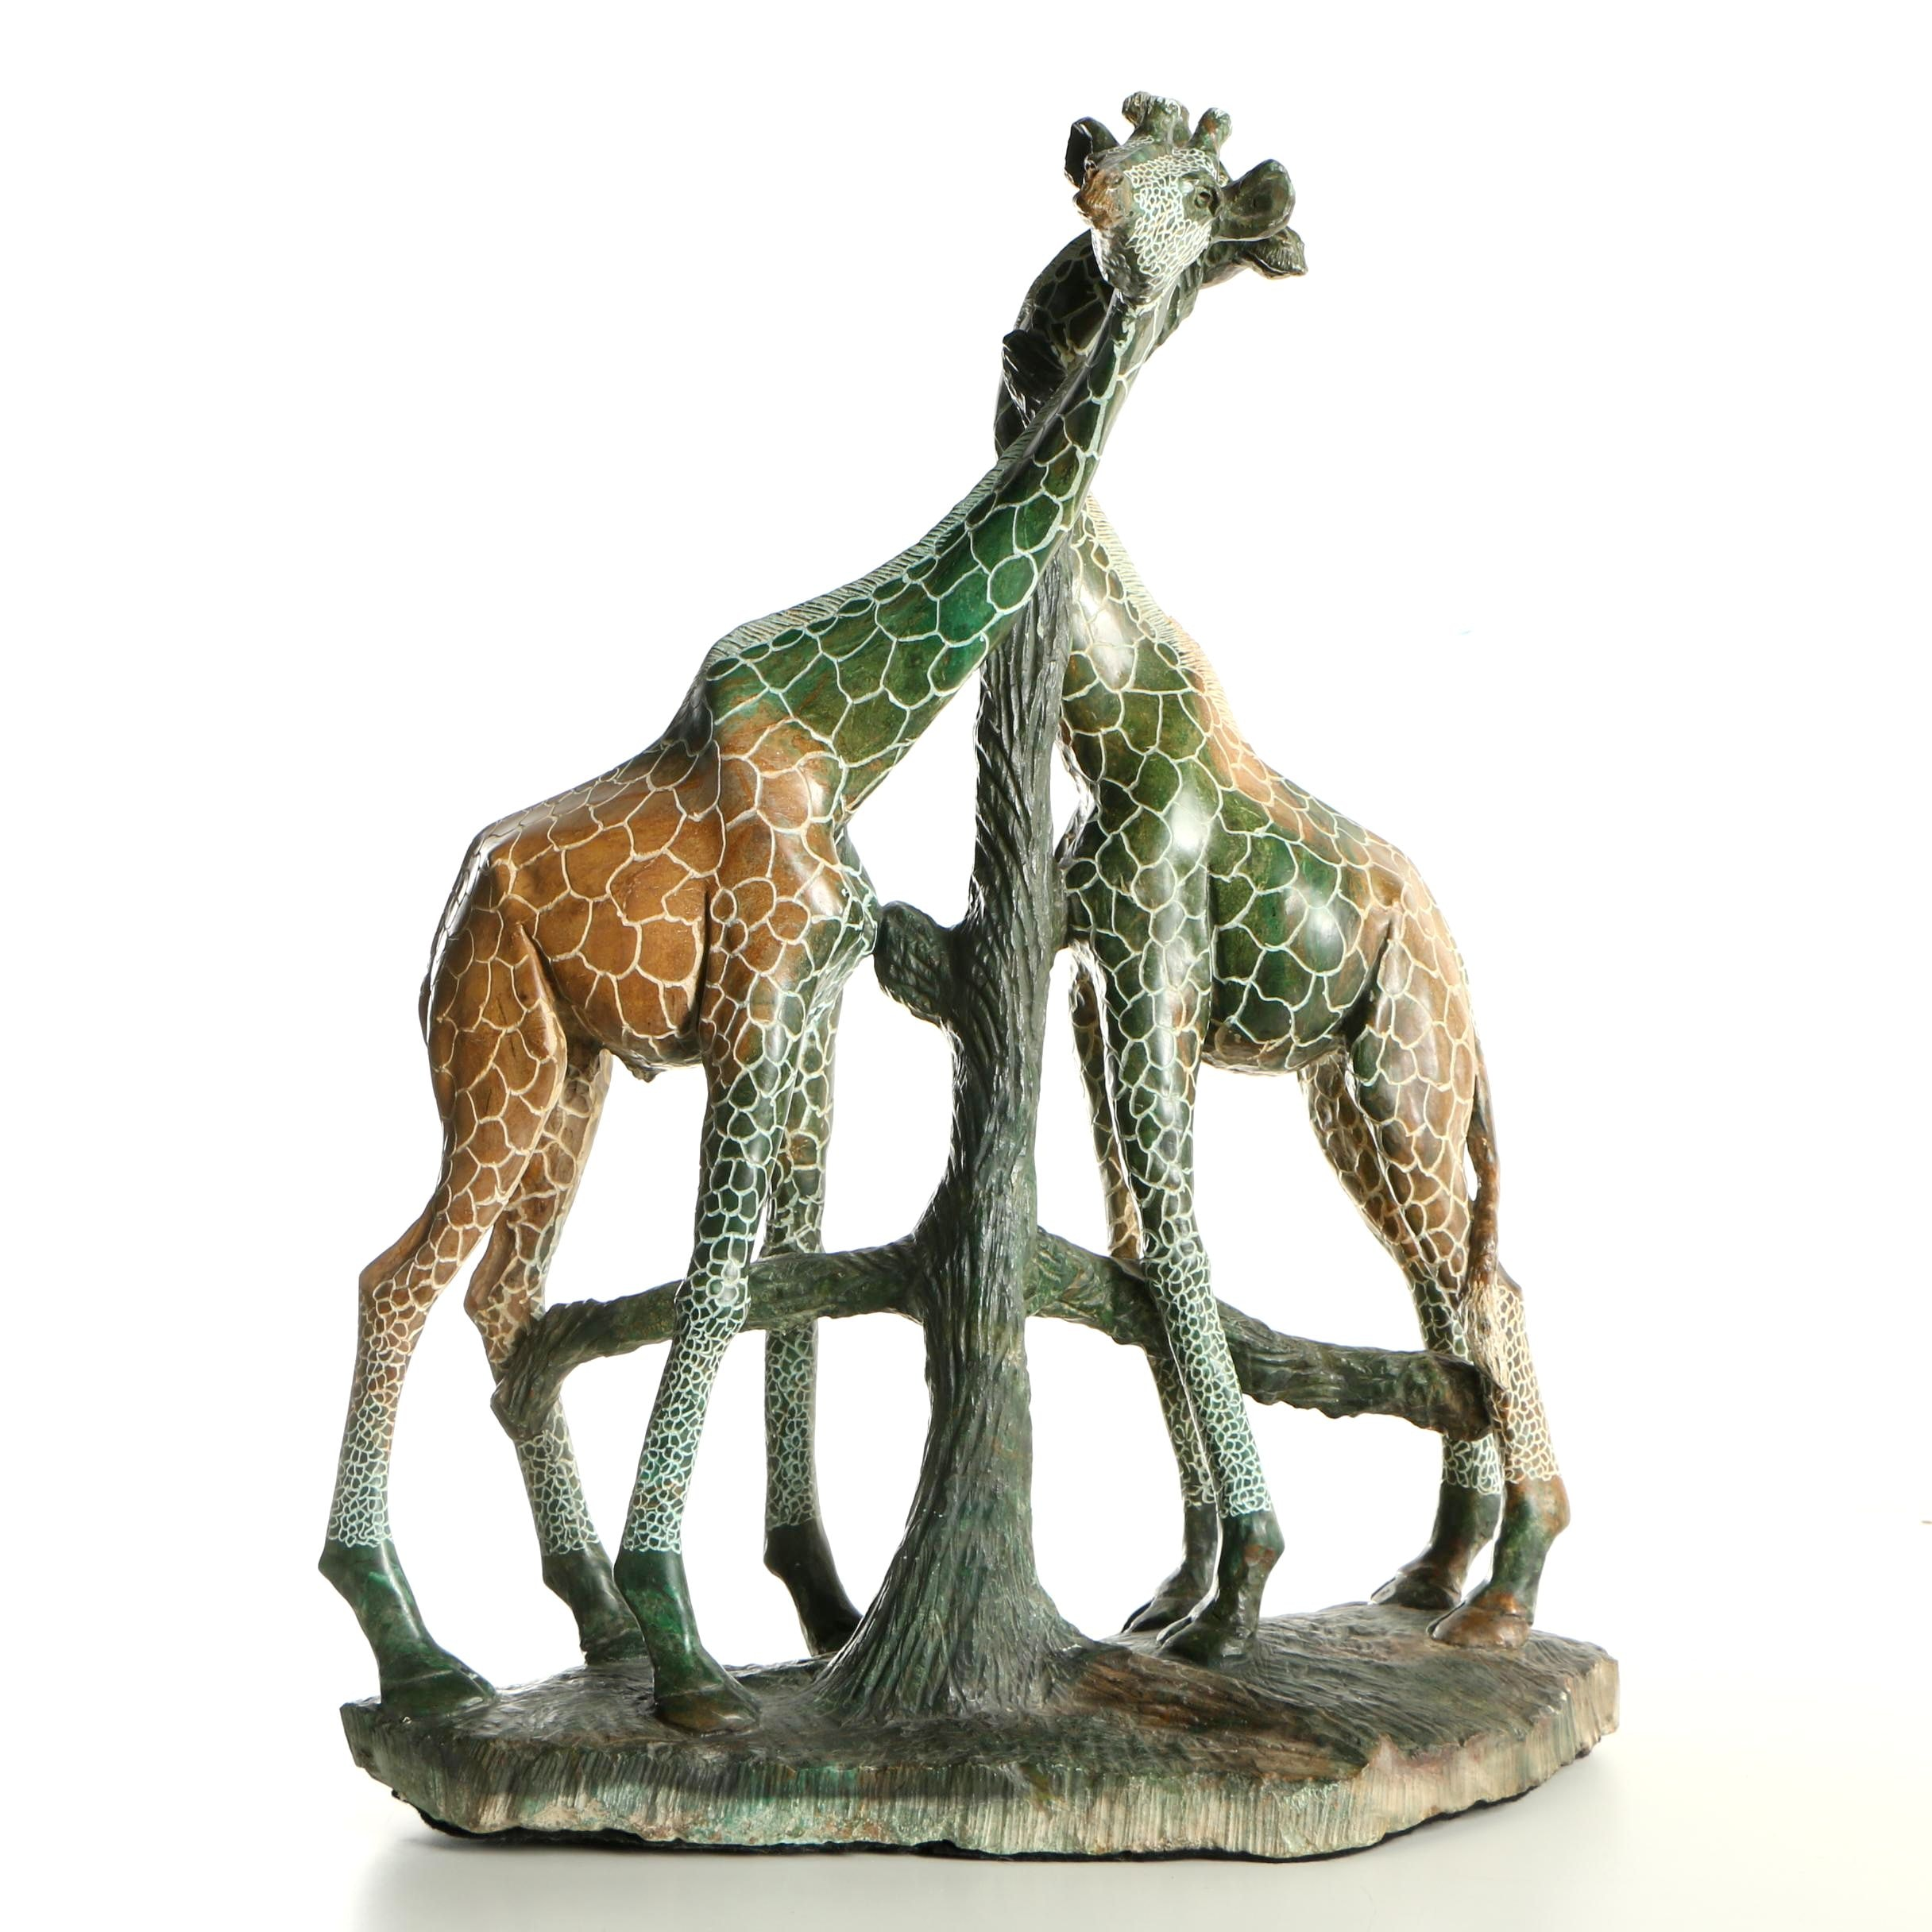 Kenyan Soapstone Sculpture of Giraffes